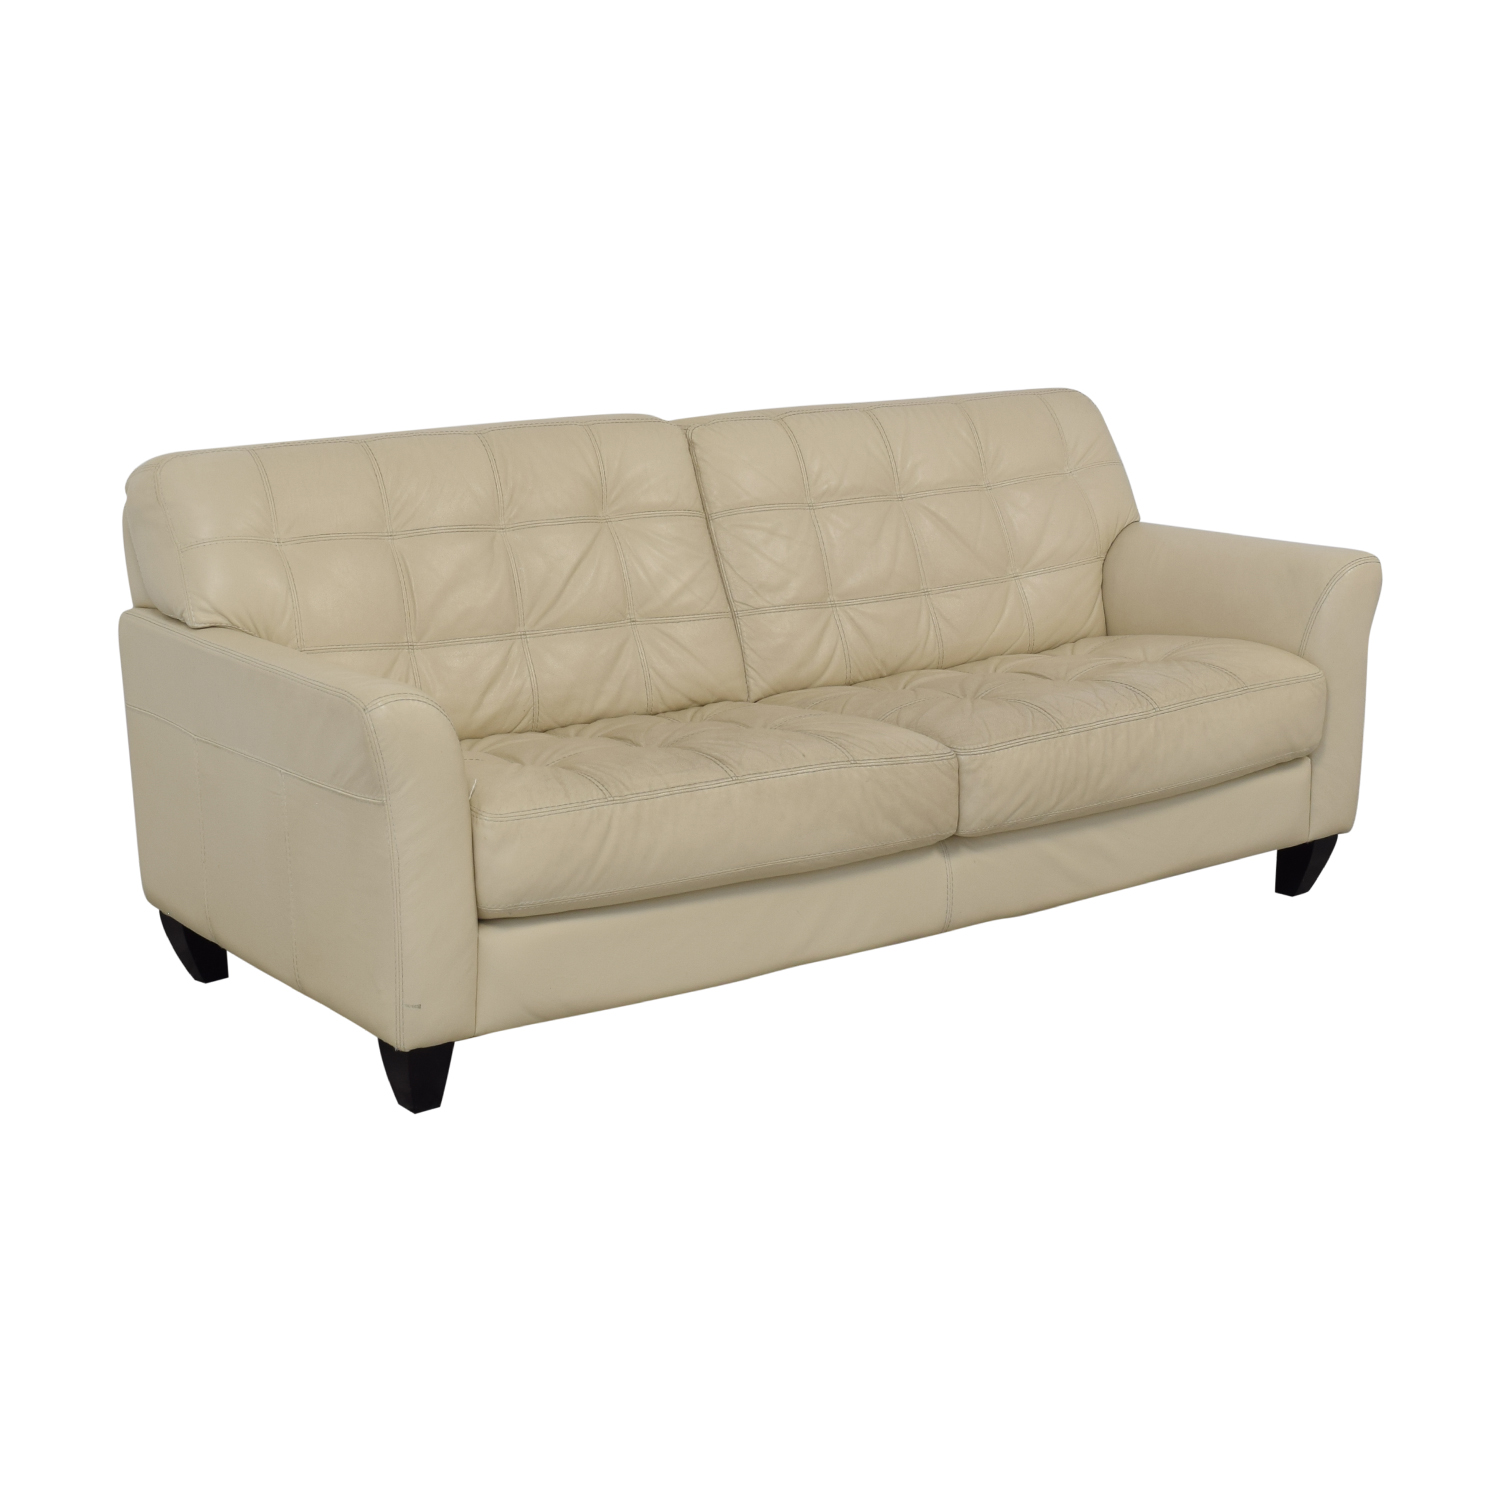 Chateau Dax Furniture Reviews: Chateau D'Ax Chateau D'Ax Milan White Leather